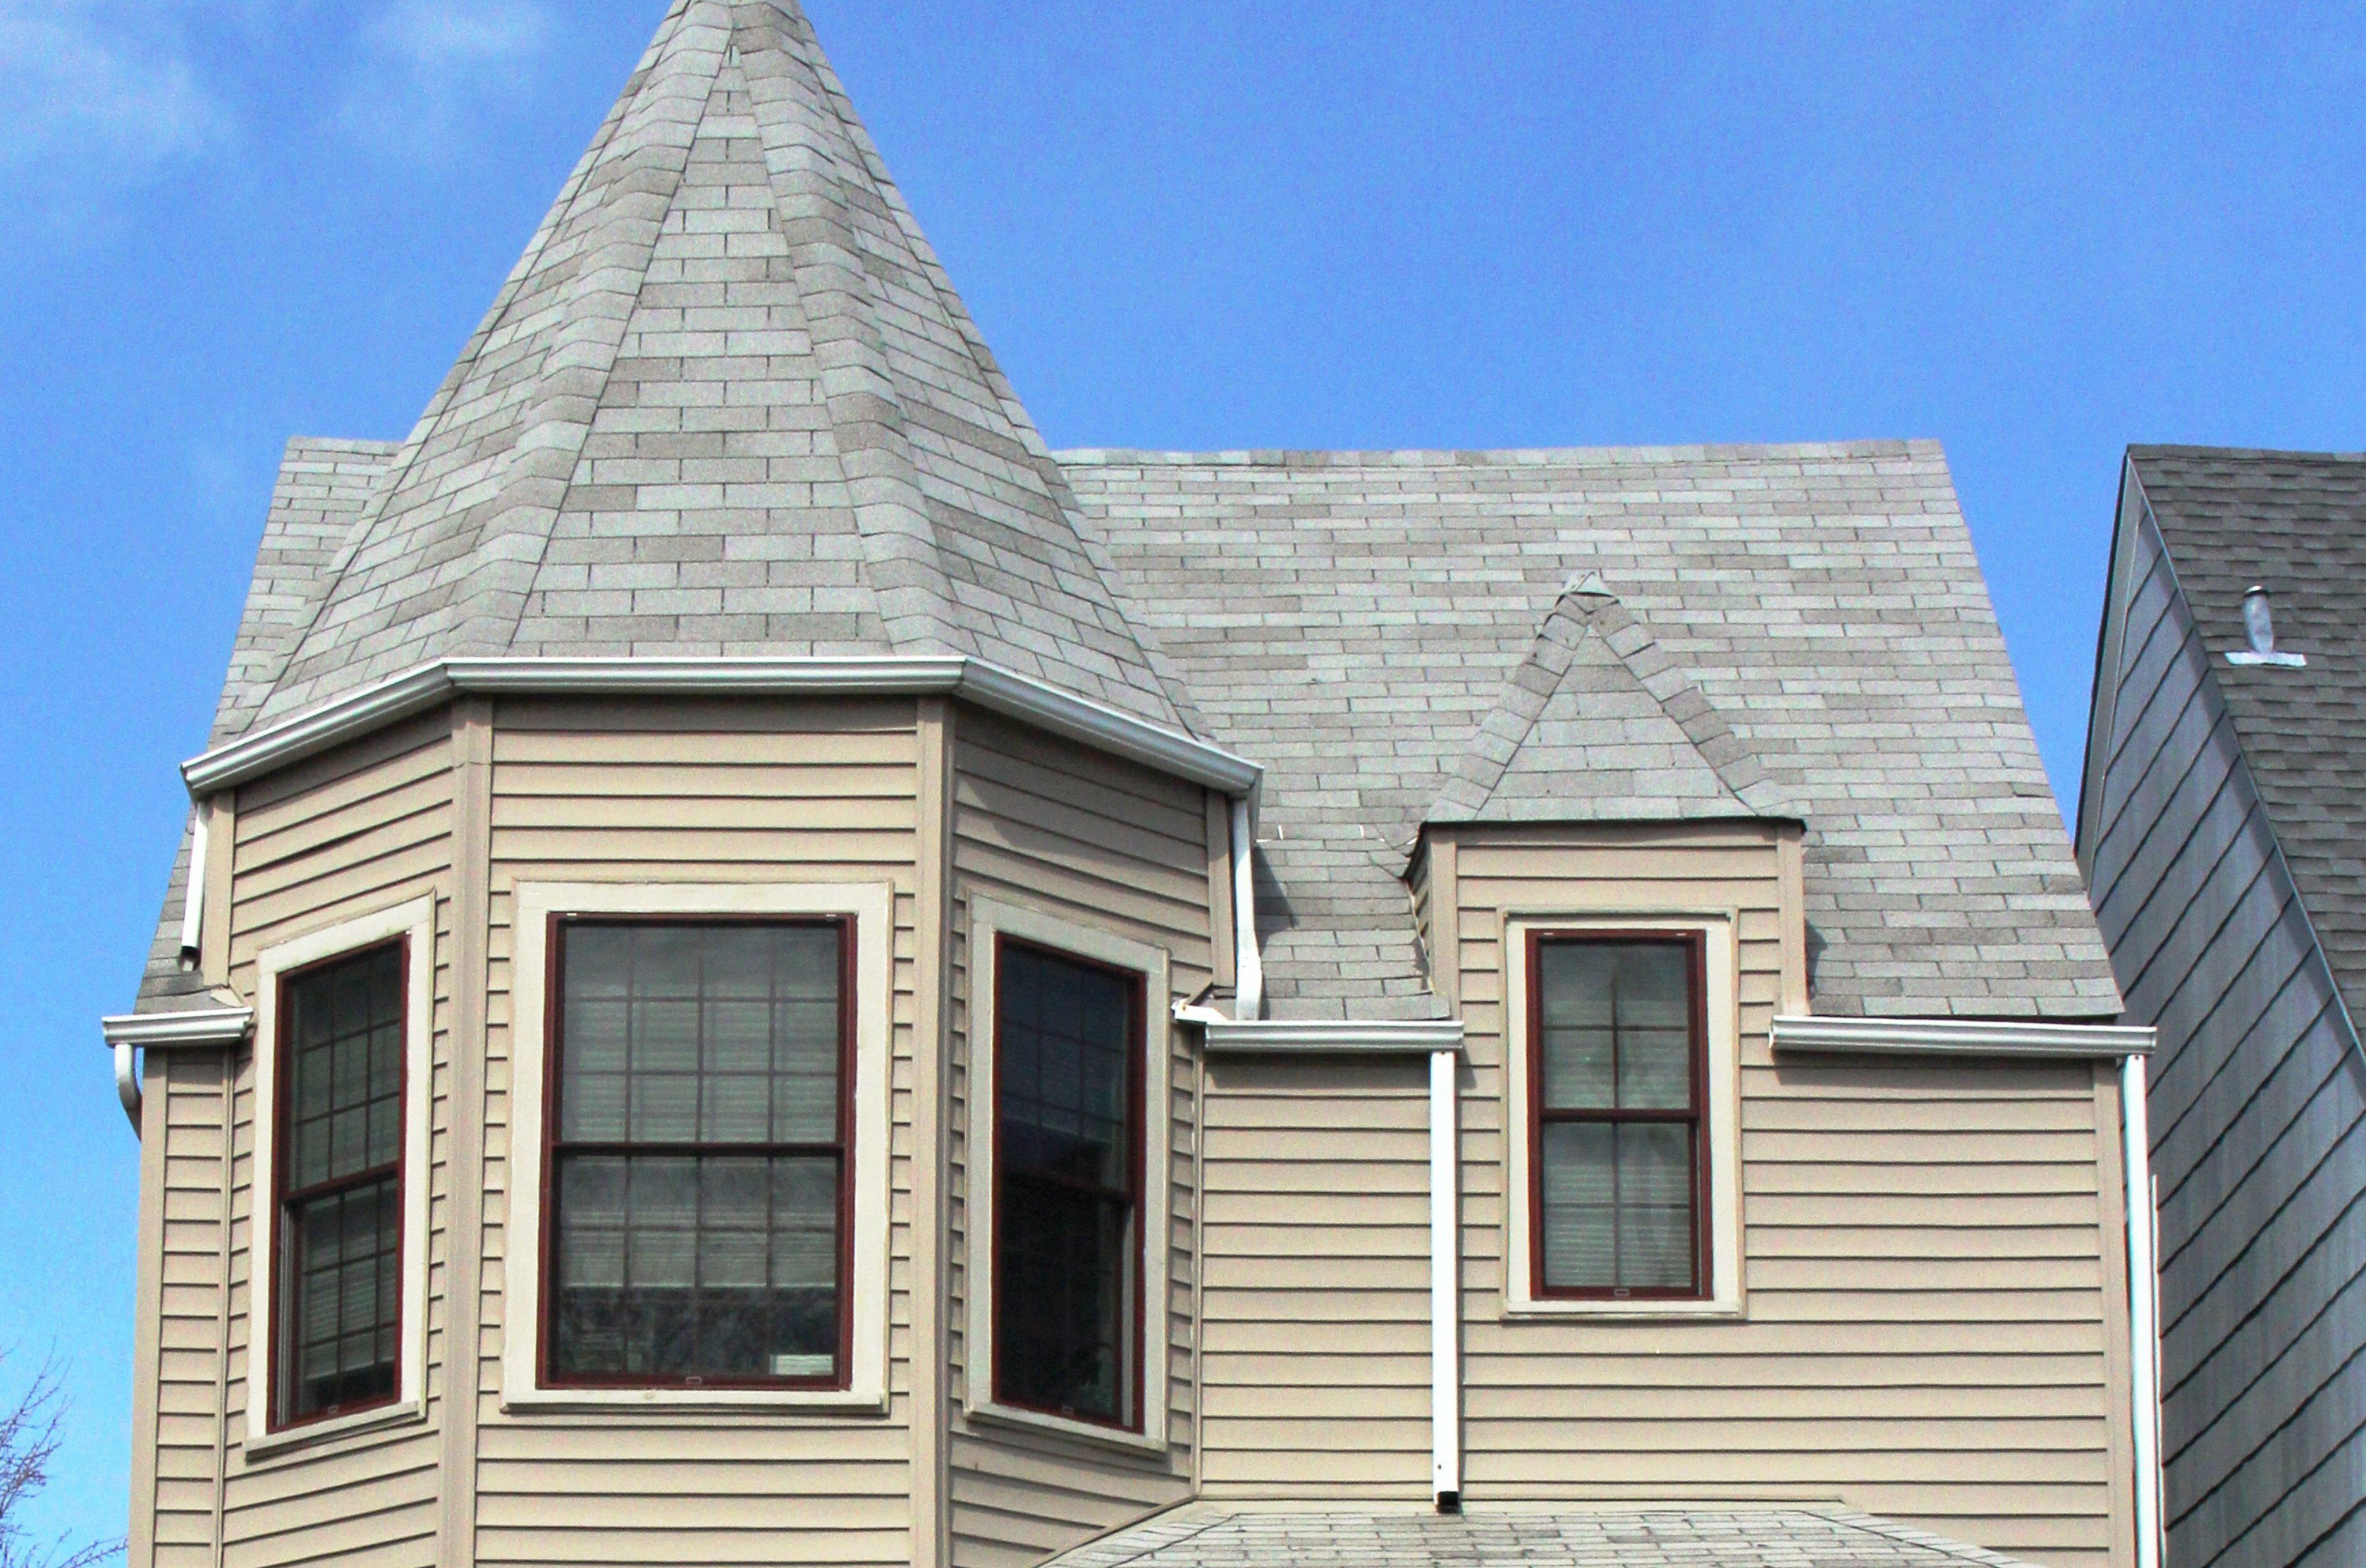 Synthetic Siding on a Queen Anne Victorian Hides Architectural Details